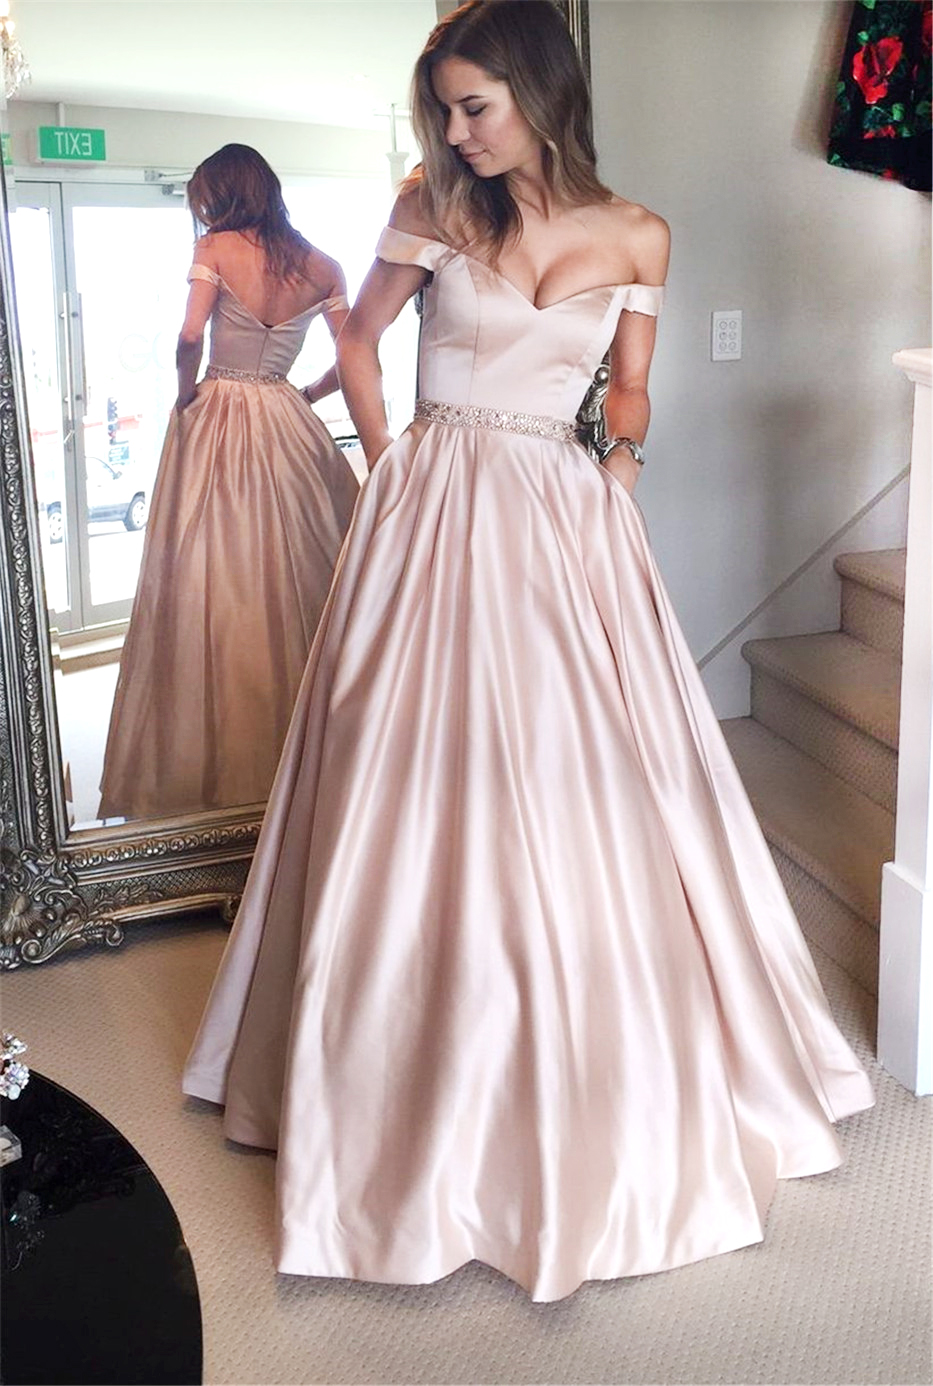 2d79e696cbe4 Stylish light pink off shoulder long prom dress,light pink evening dresses  - Thumbnail 1 ...